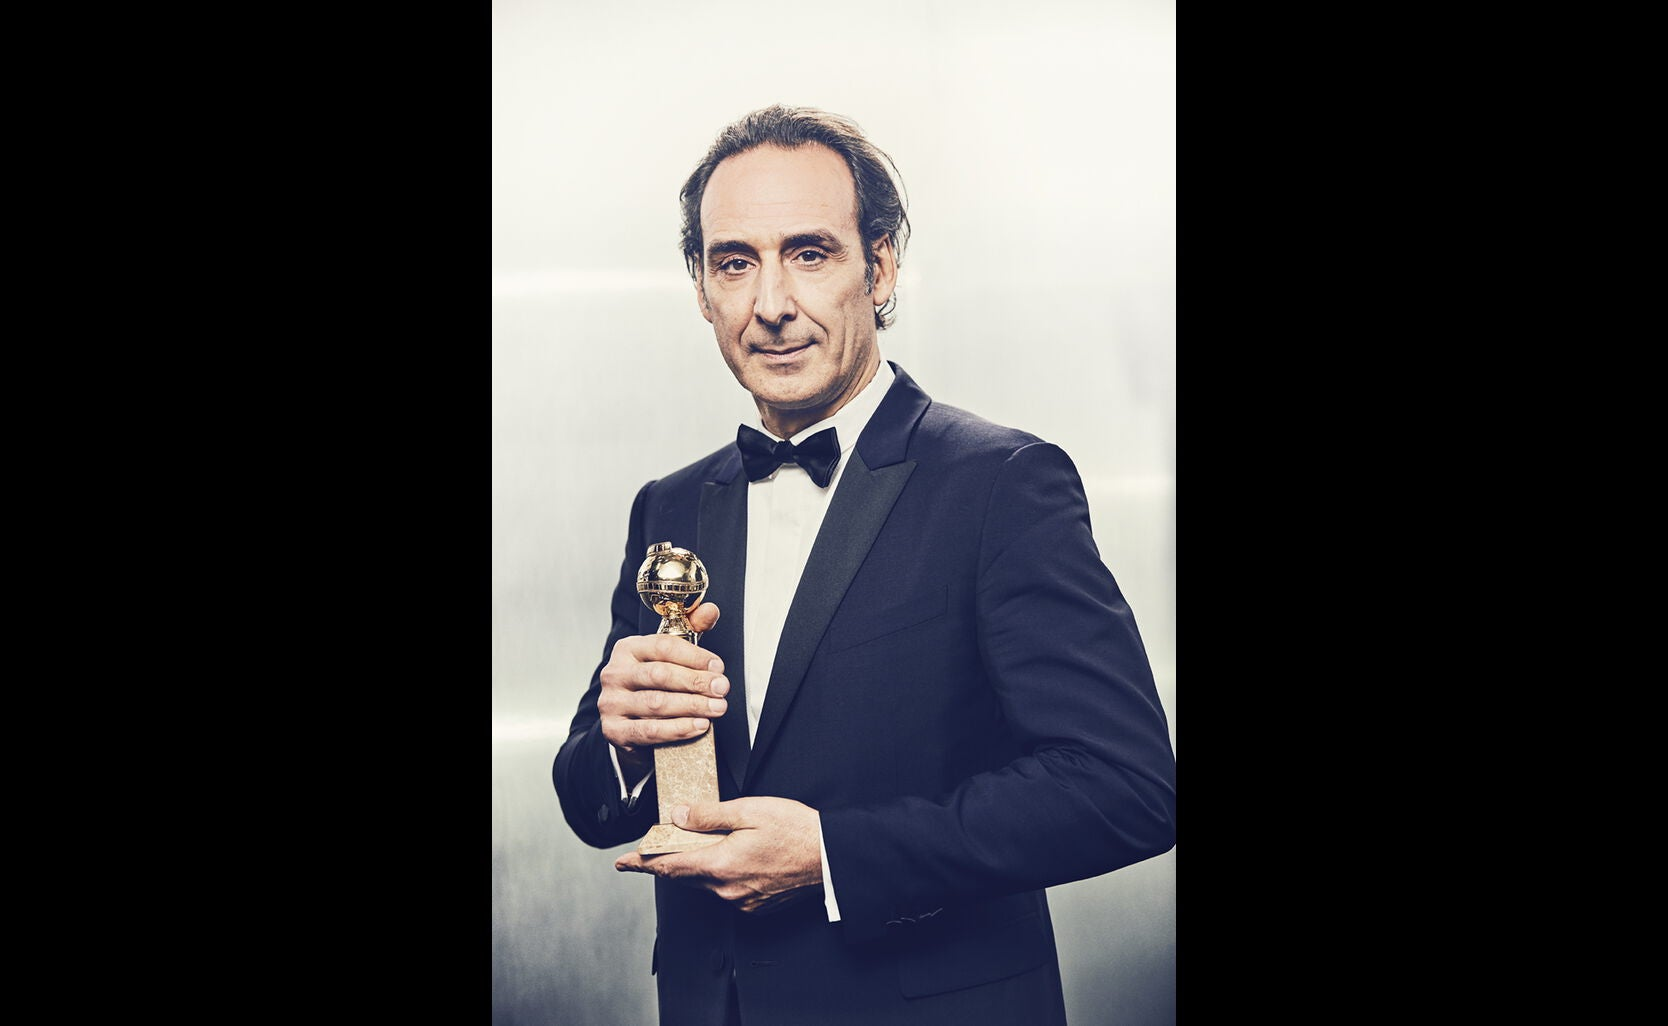 Composer Alexandre Desplat, Golden Globe winner